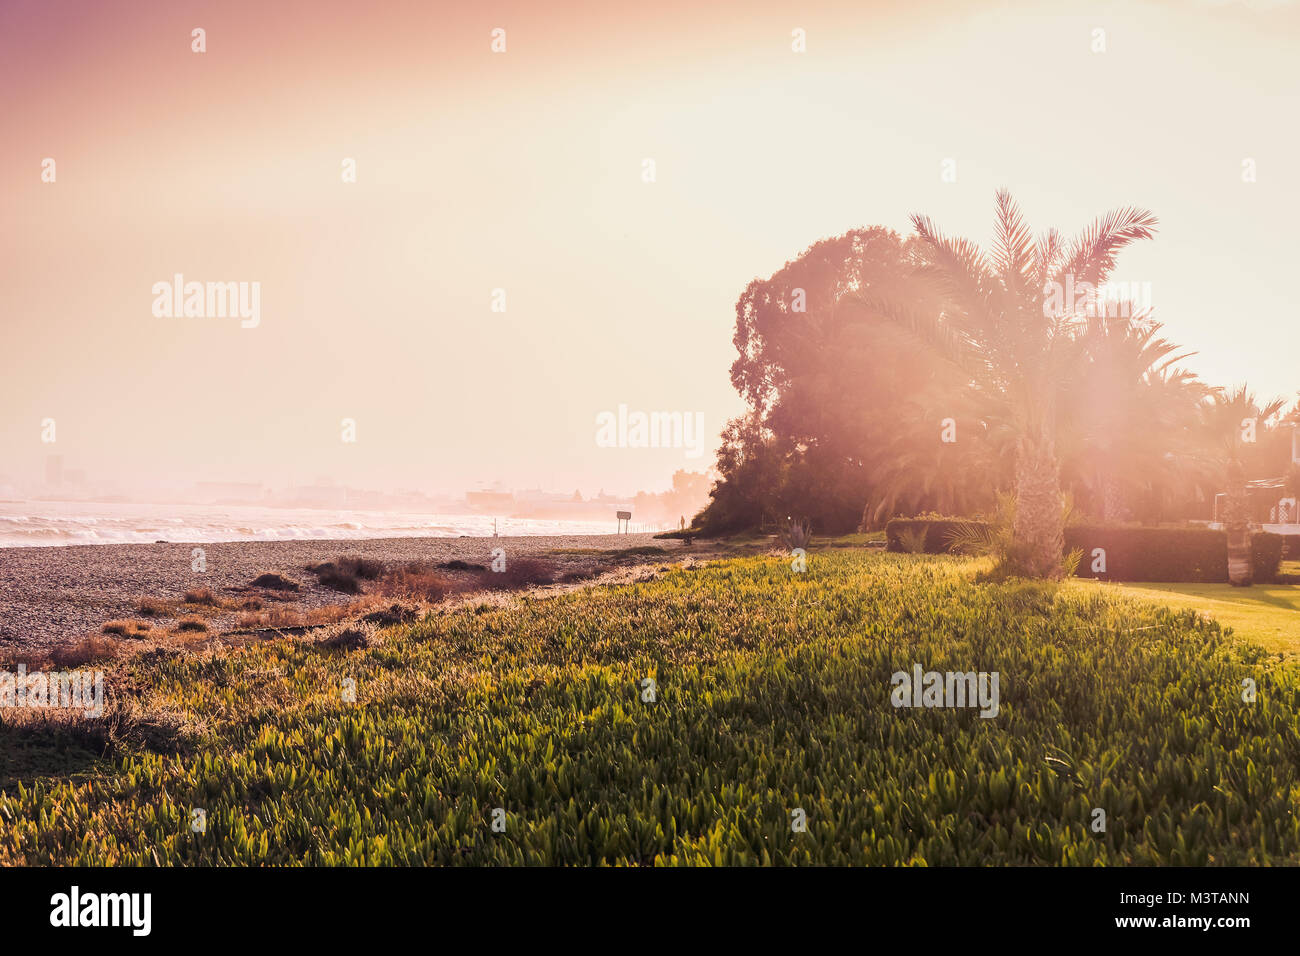 Perfect morning on the beach in Larnaca. Sunrise light and warm vintage tones. - Stock Image